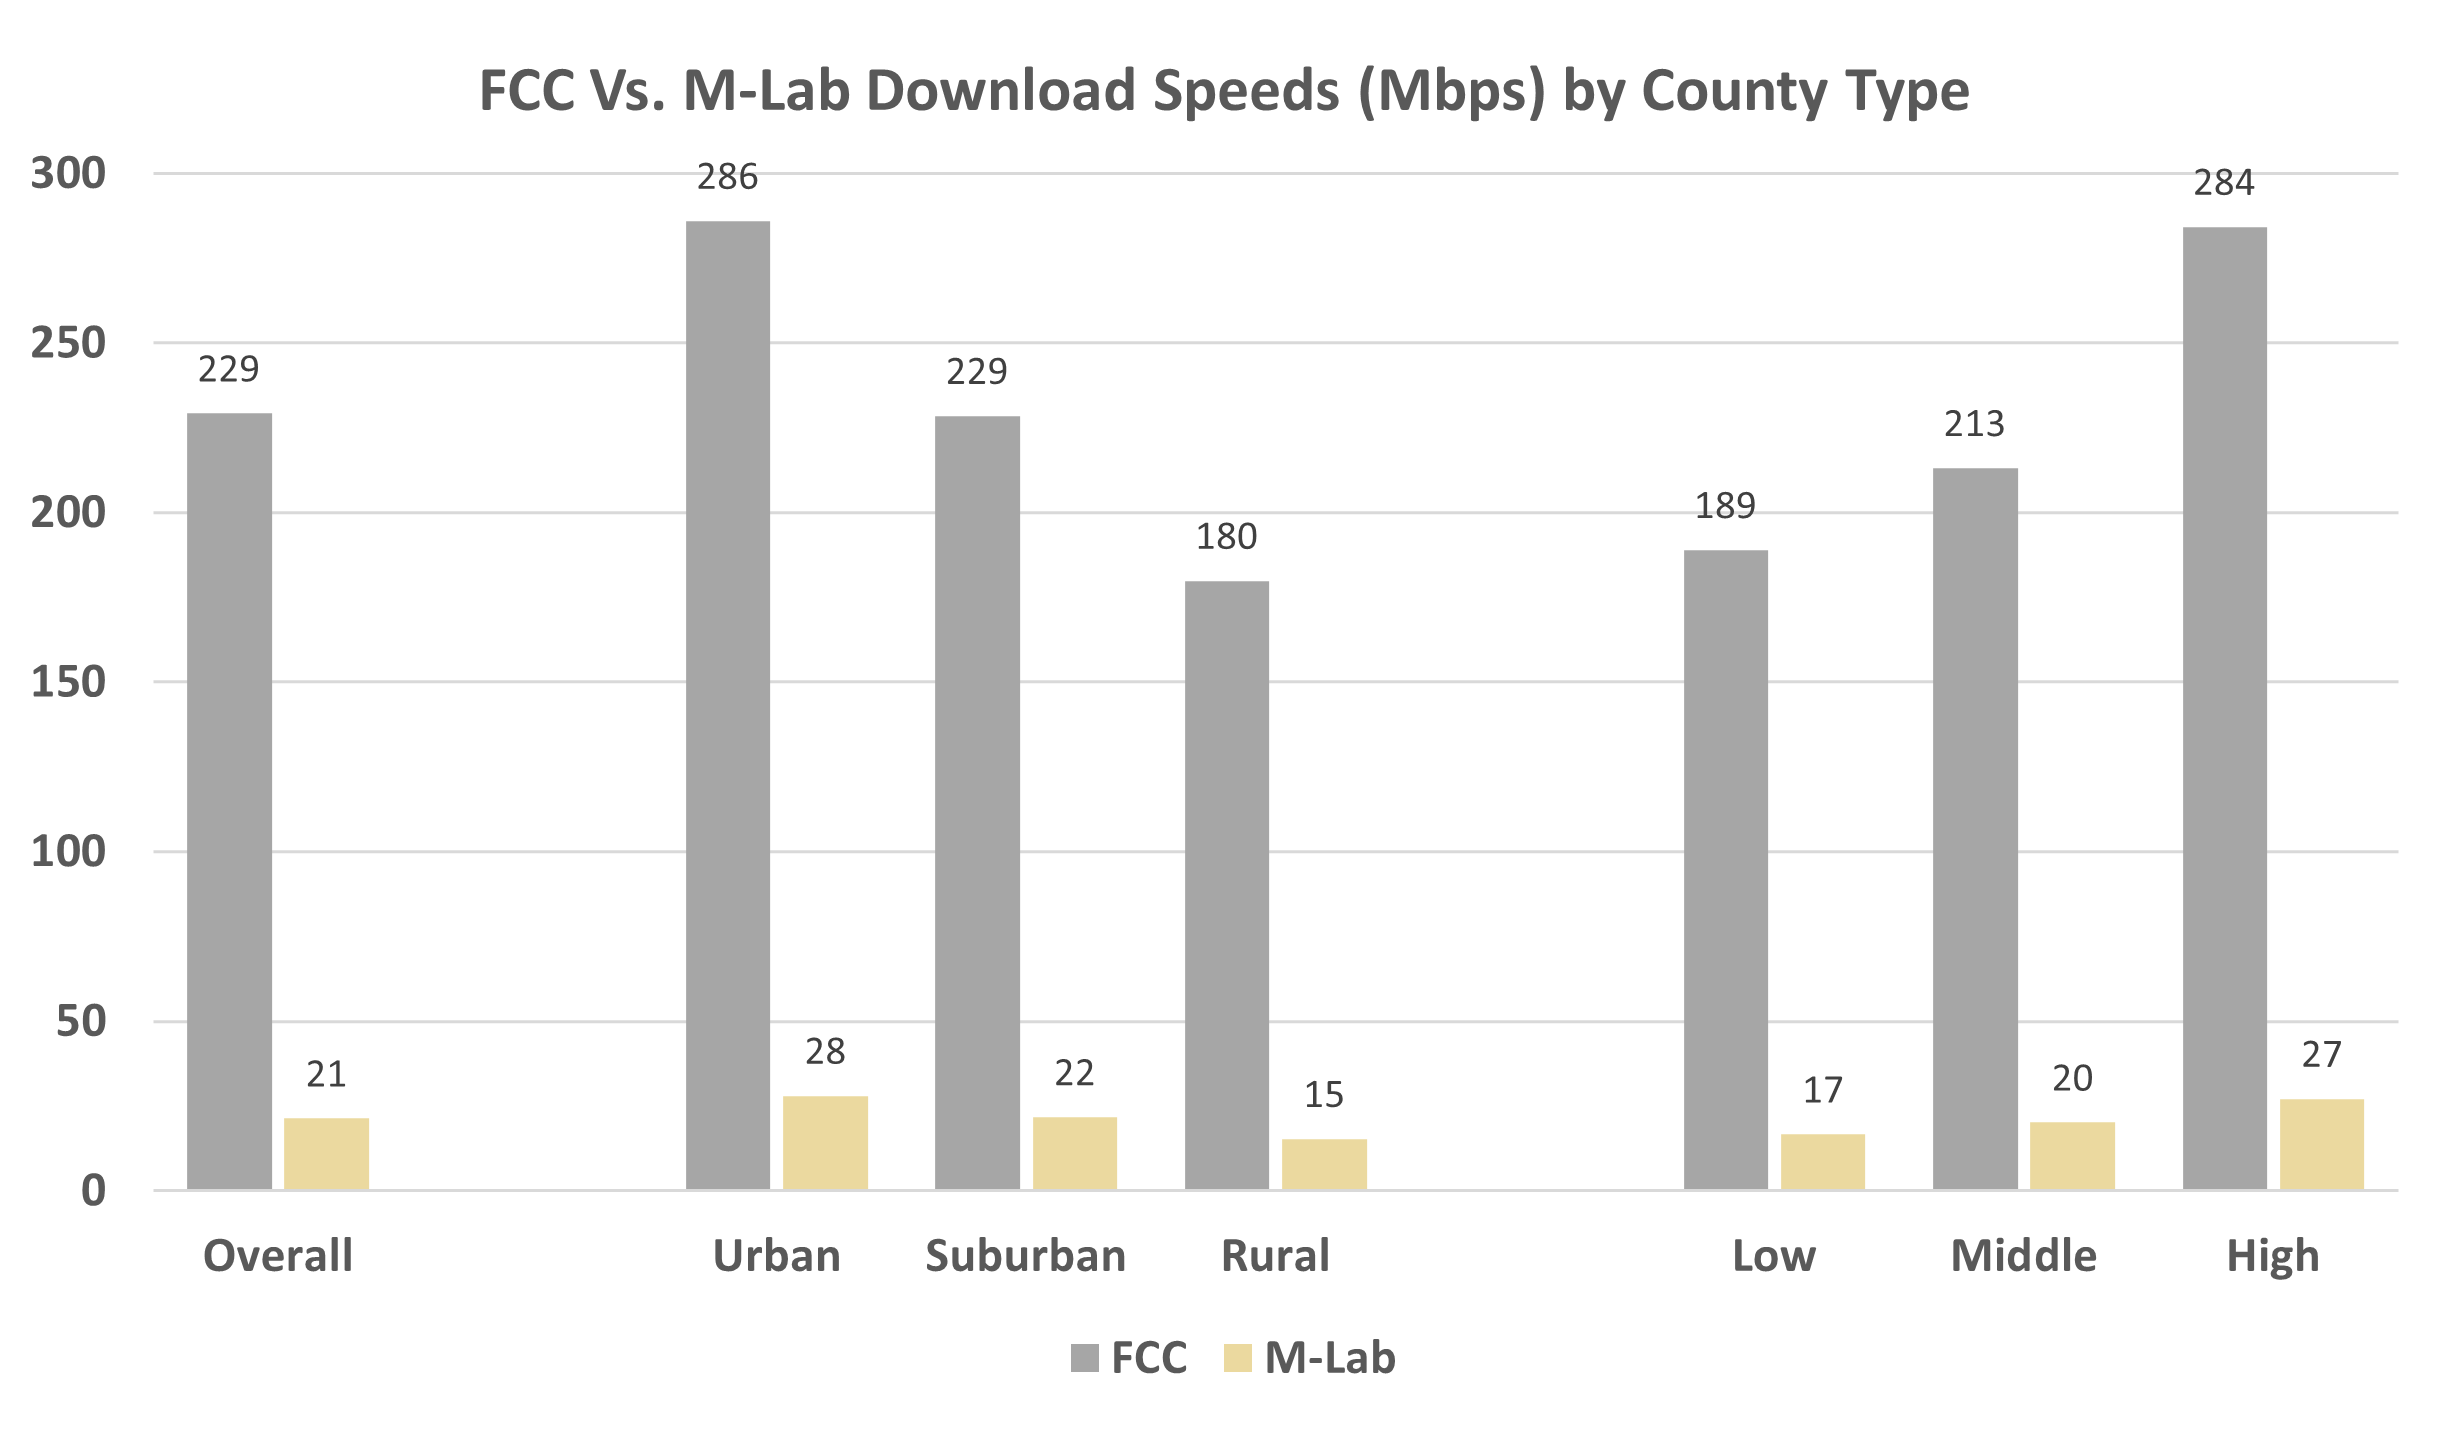 FCC Vs. M-Lab Download Speeds (Mbps) by County Type